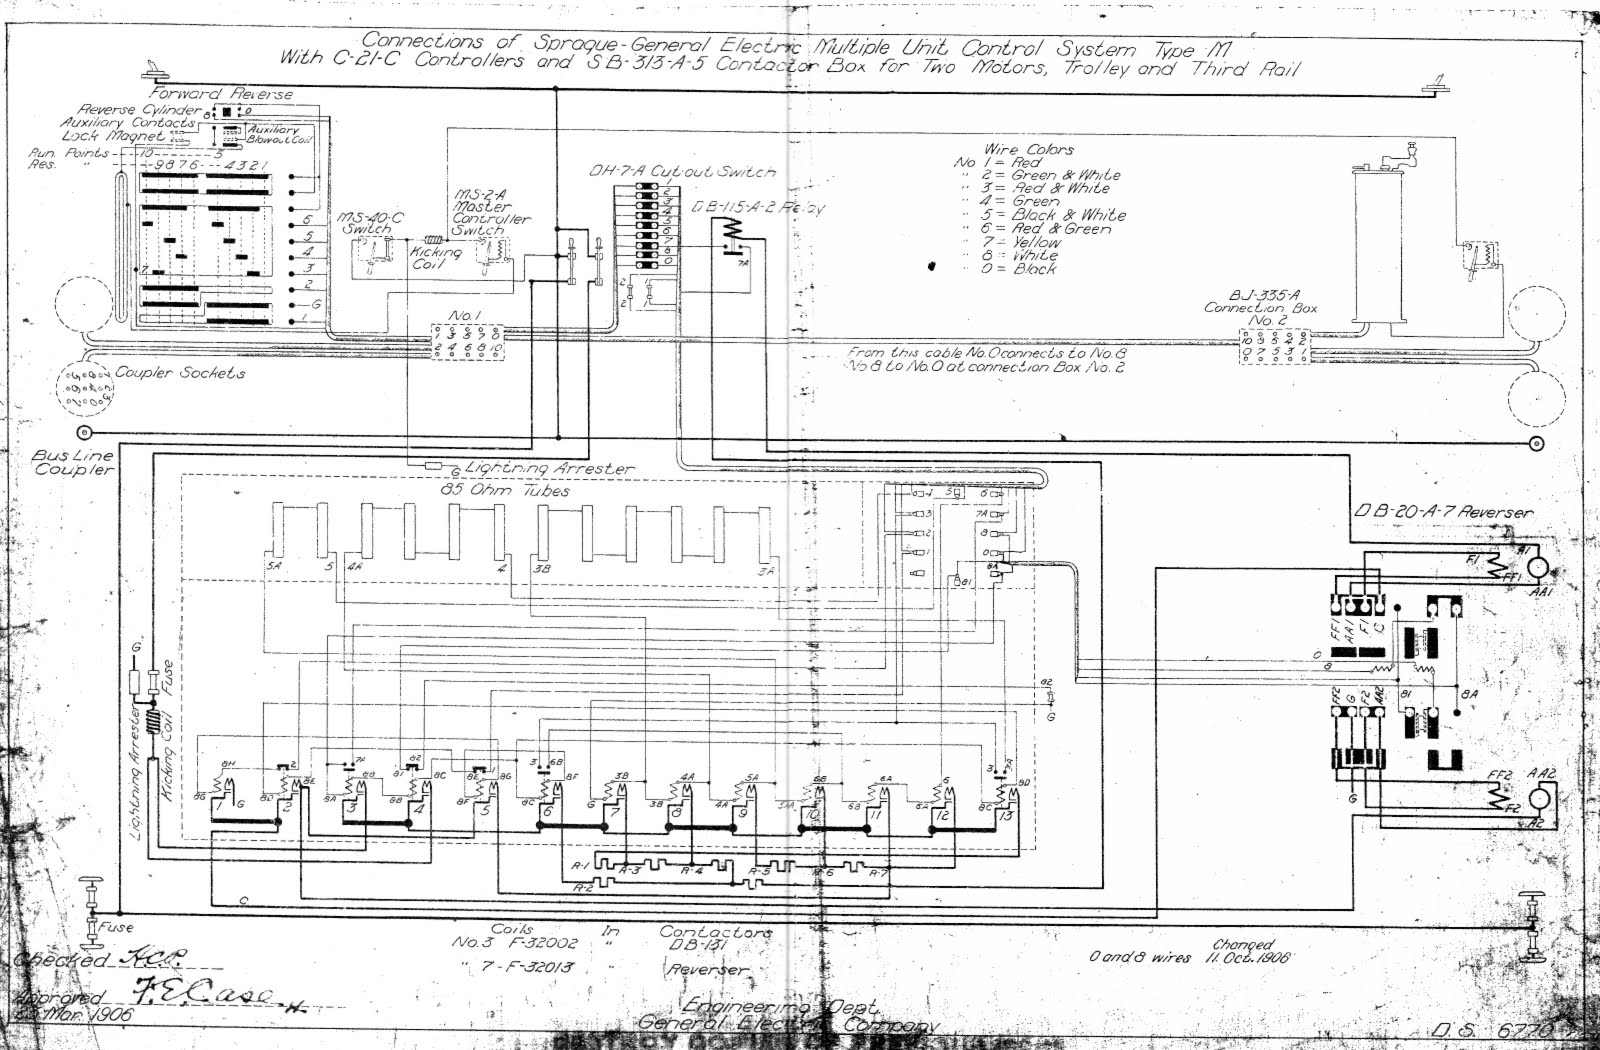 Mack Headlight Wiring Diagram 83 Mack Pump Diagram Wiring